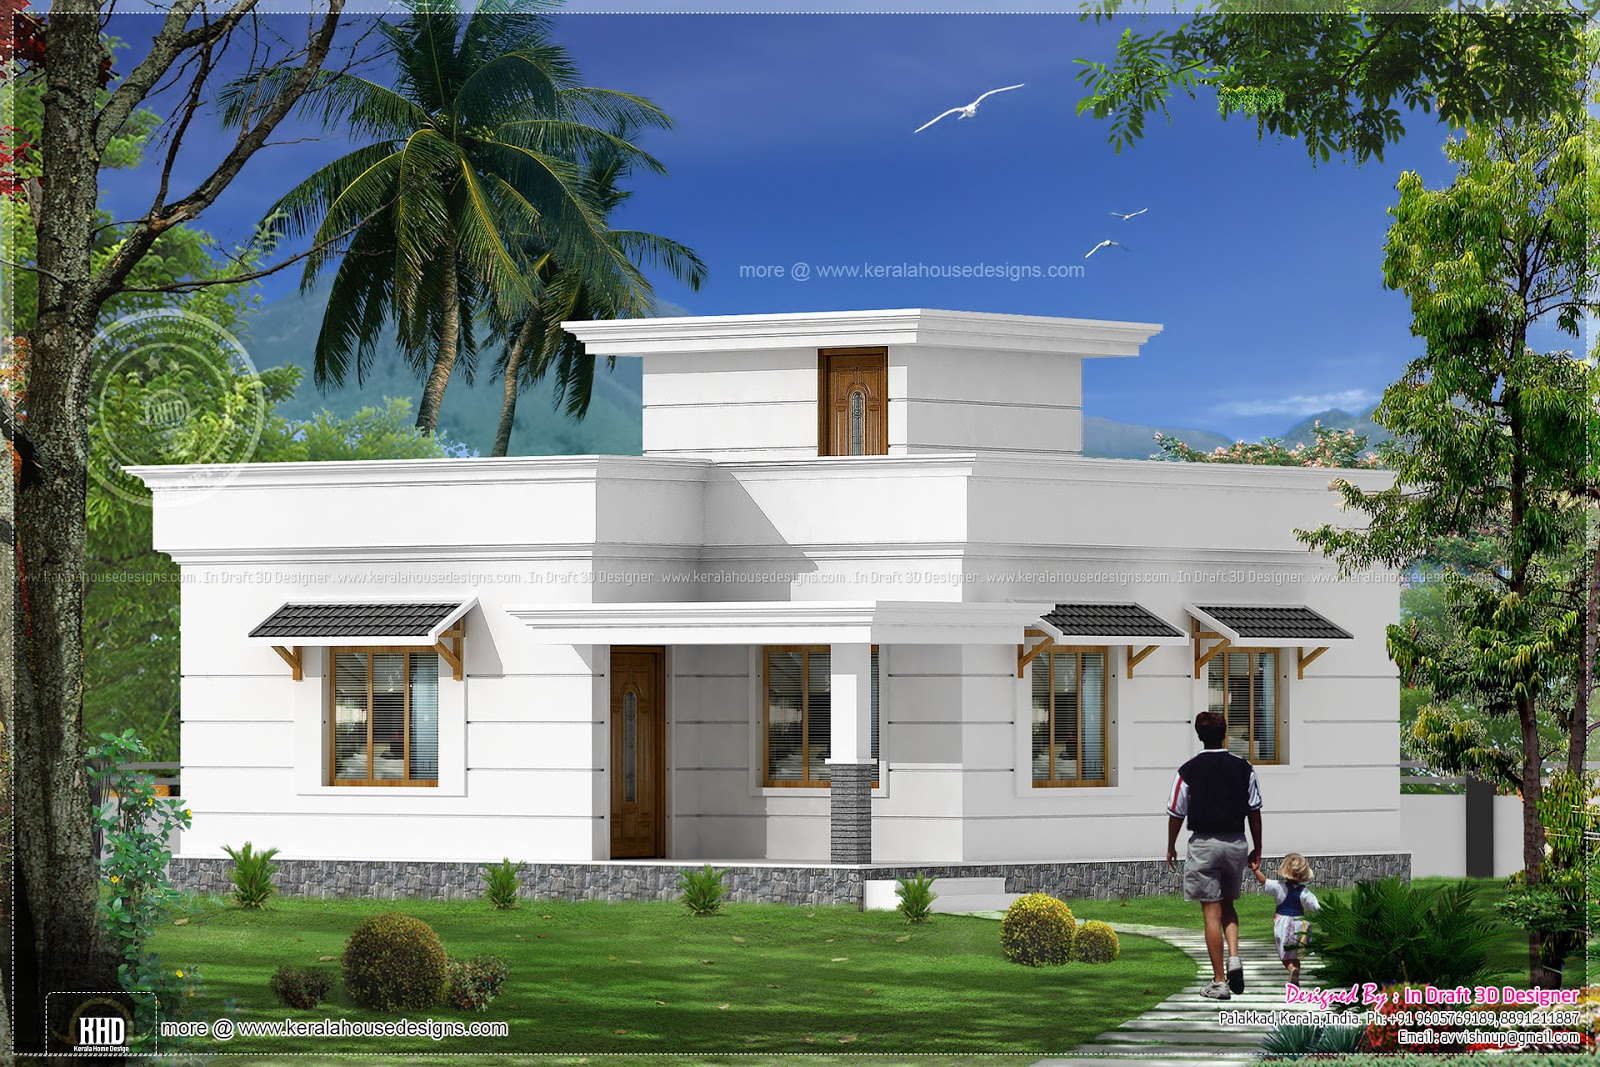 2 bed room kerala villa 1117 sq feet kerala home design for Small villa plans in kerala